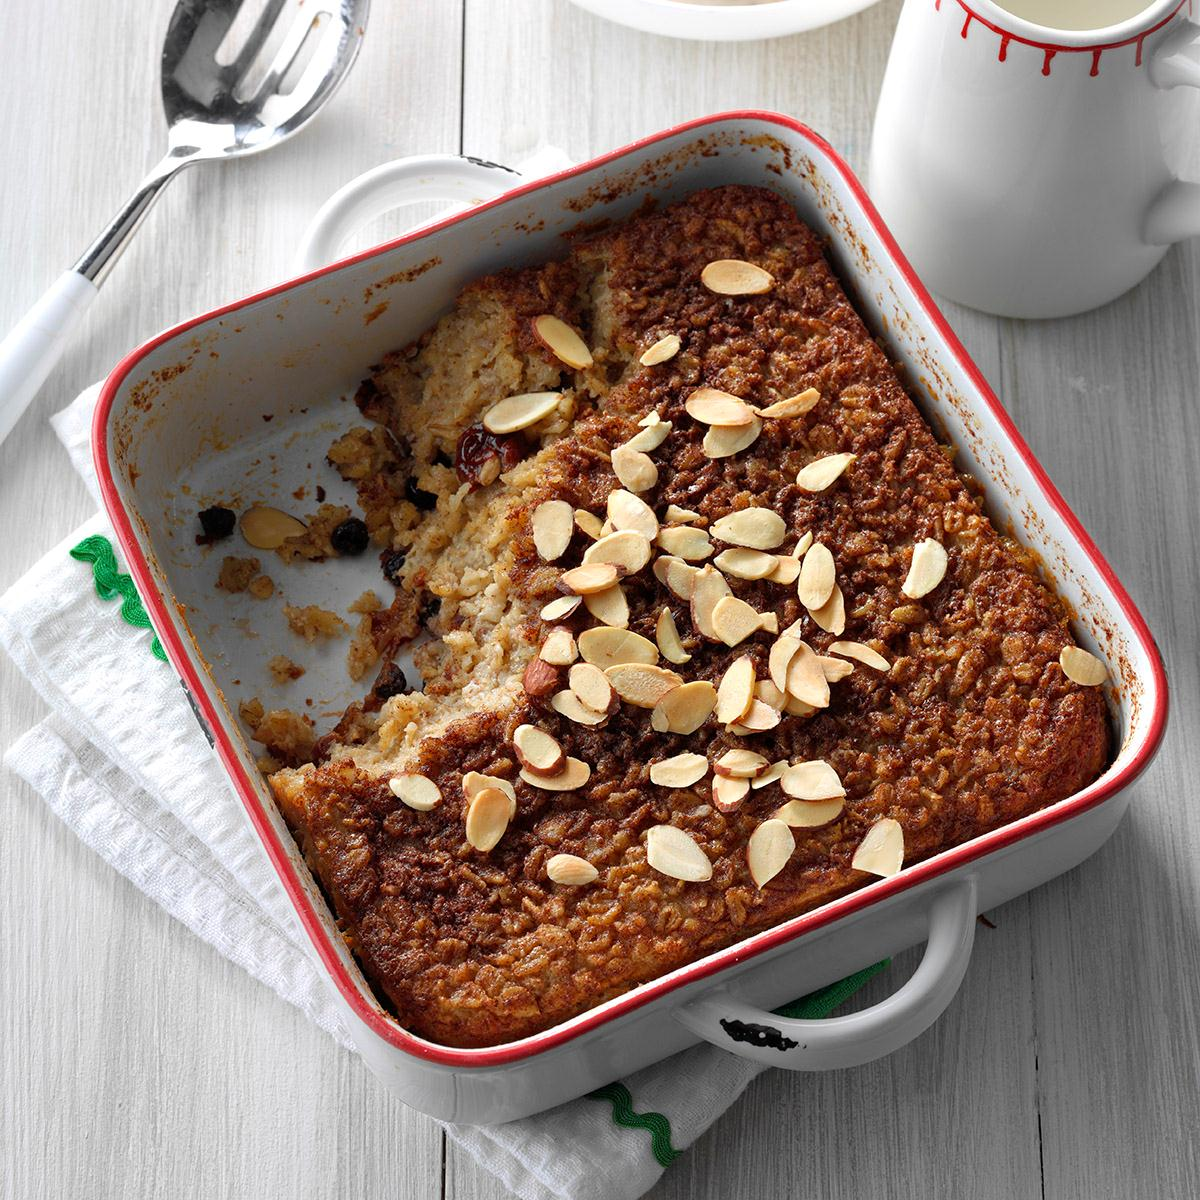 Overnight baked oatmeal recipe taste of home ccuart Image collections